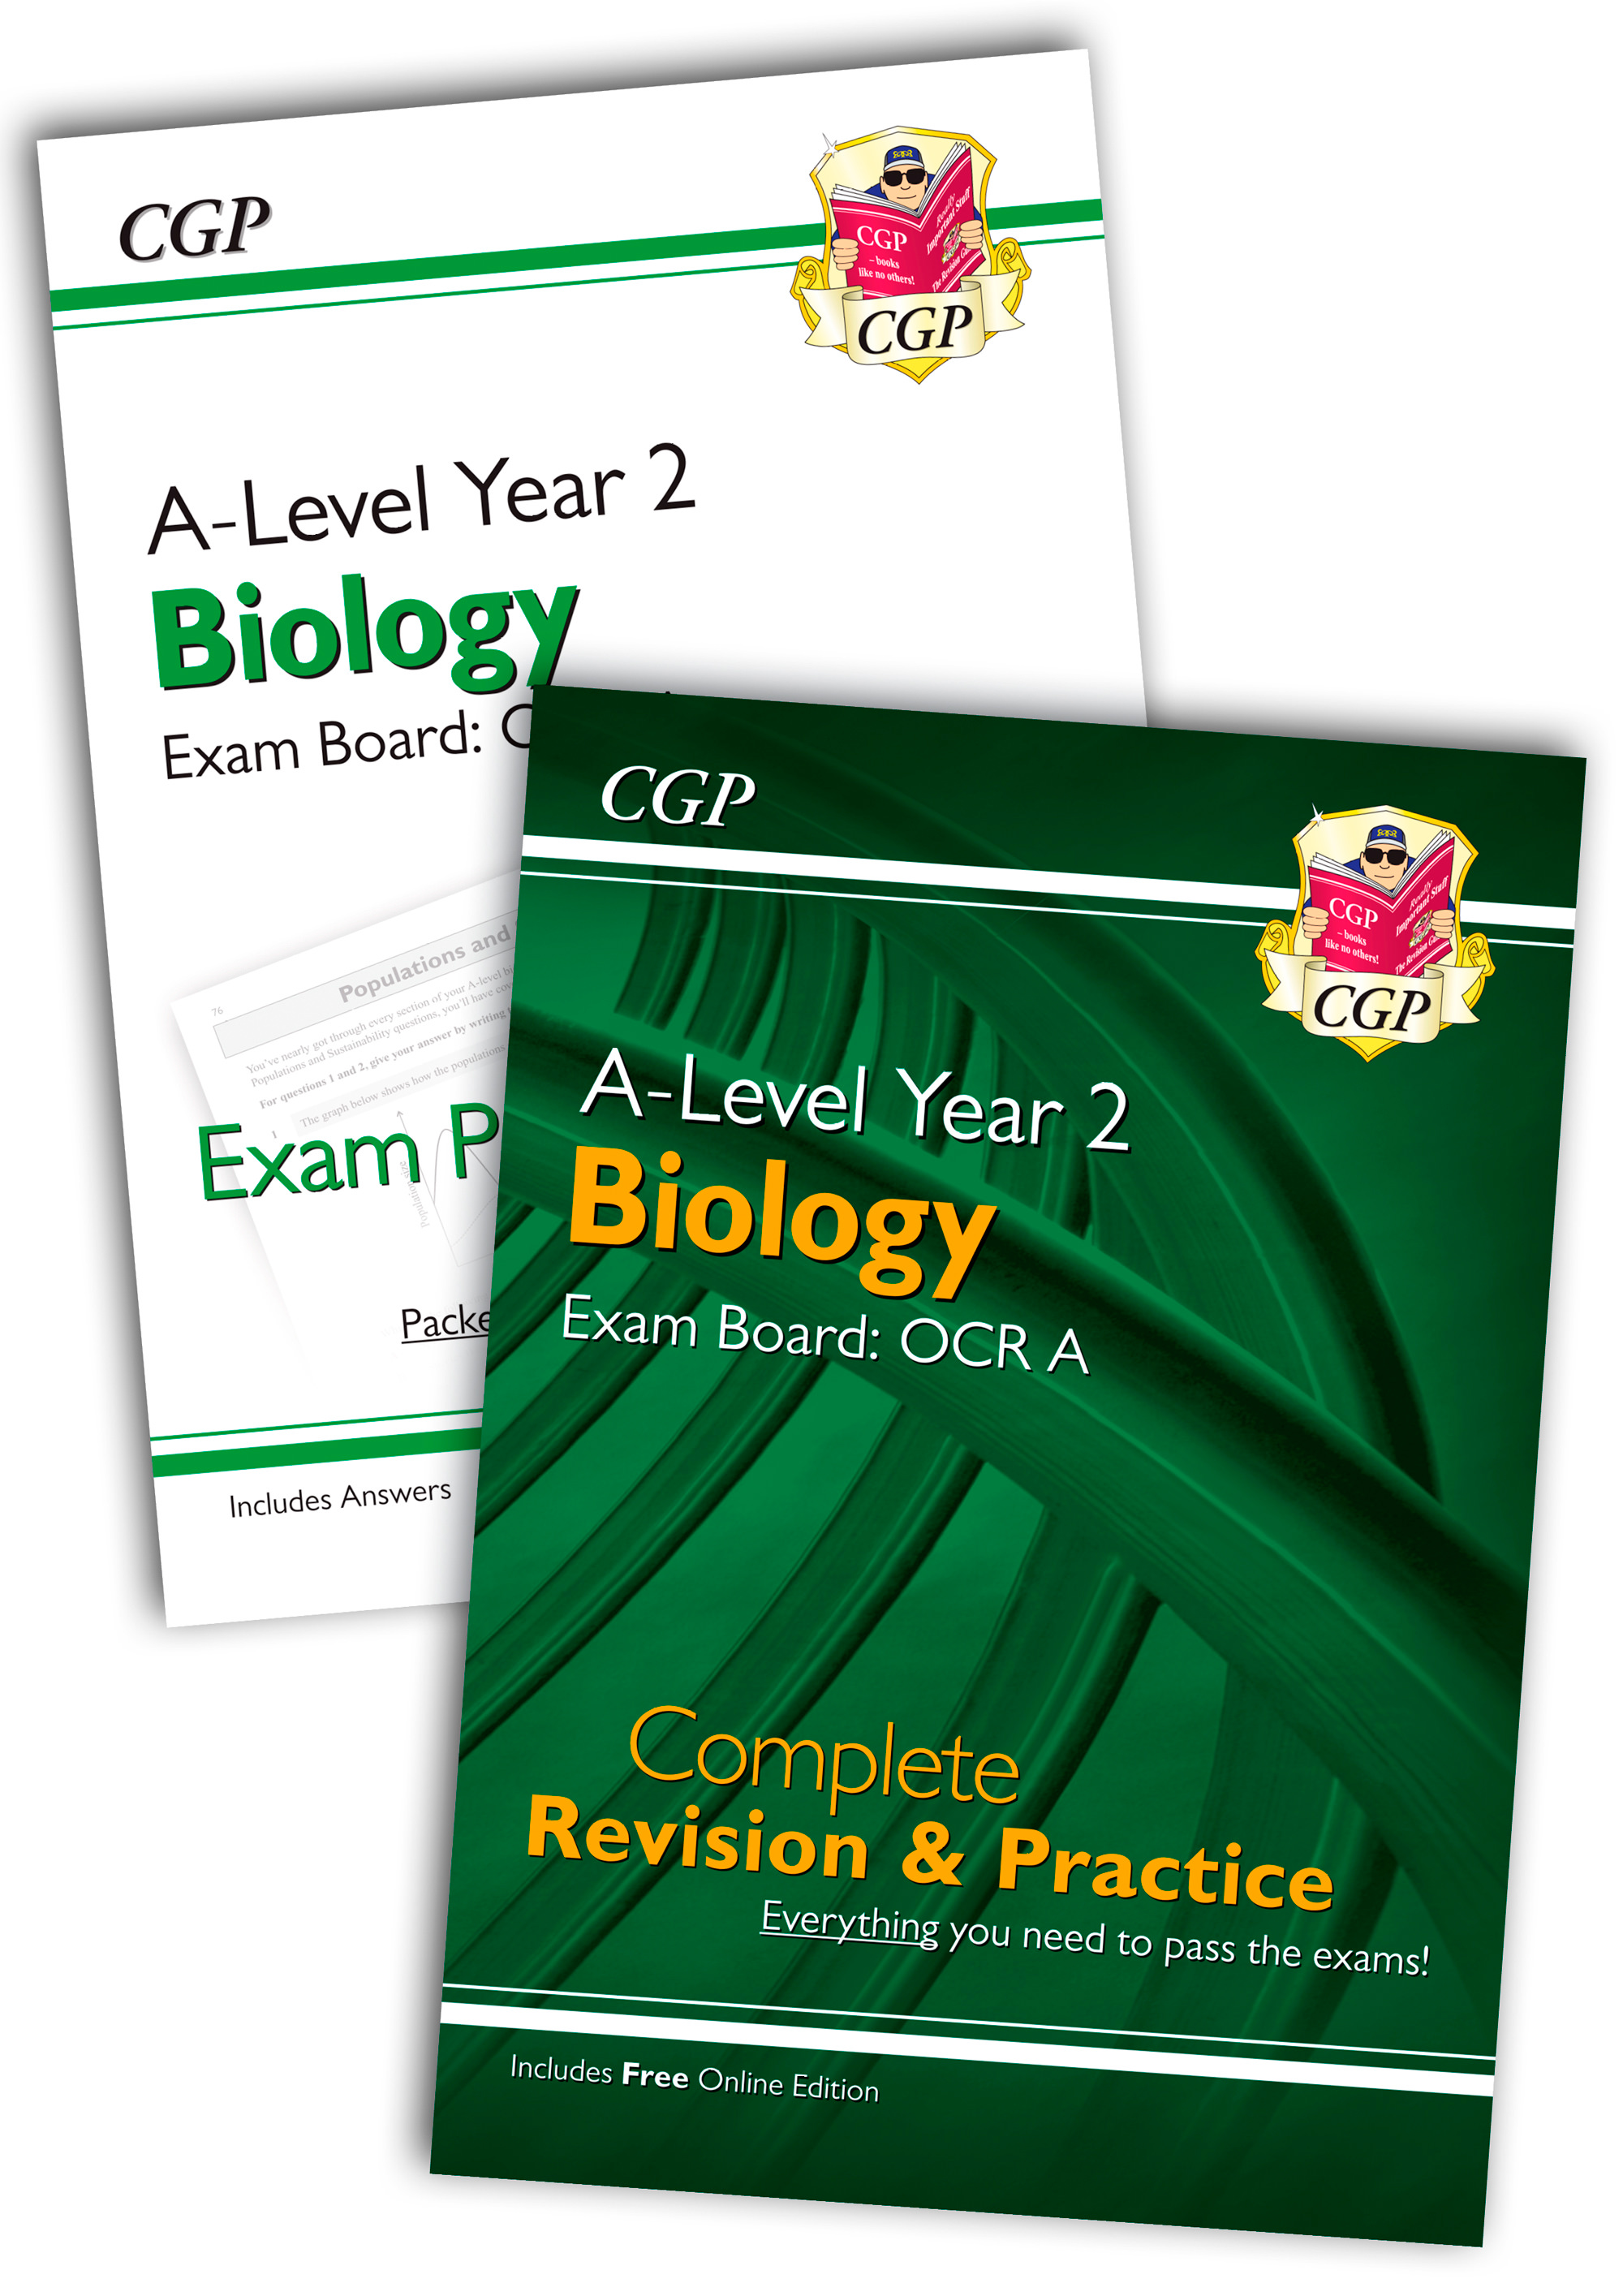 BRARQB61 - New 2018 Complete Revision and Exam Practice A-Level Biology Bundle: OCR A Year 2